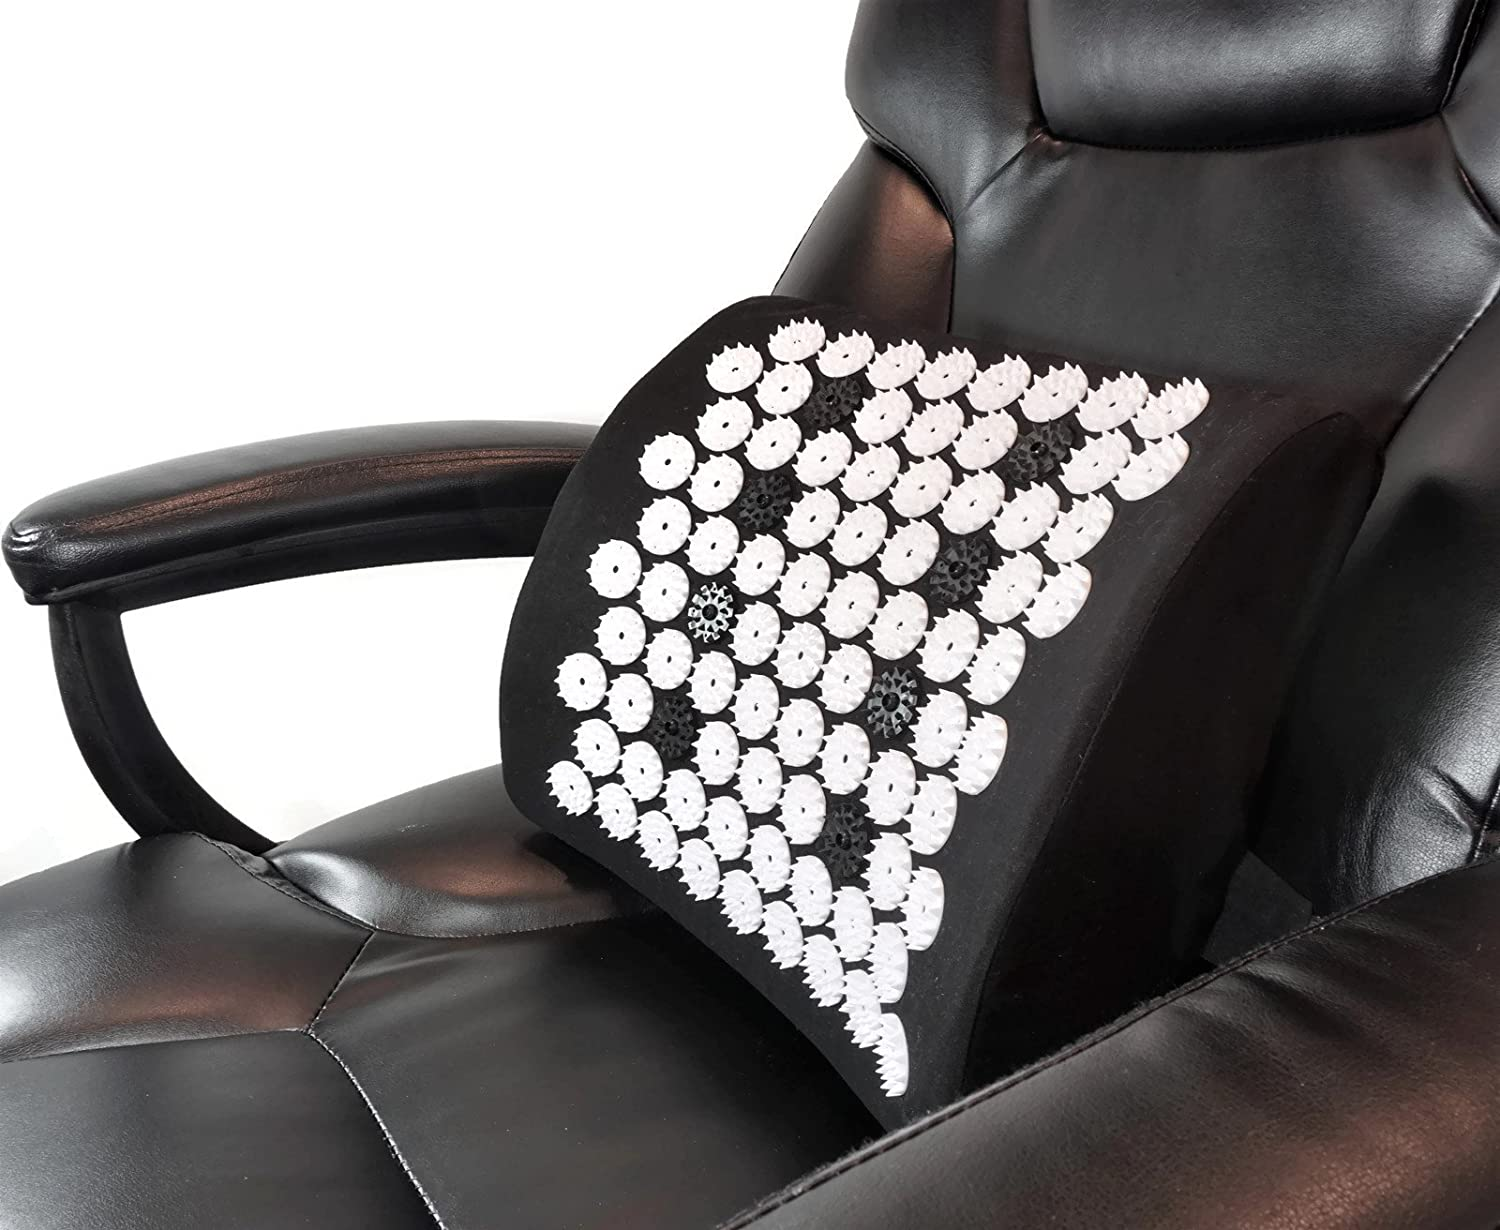 ZenGuru Best Lumbar Support Cushion - Acupressure Massage Back Pillow - Posture Improvement, Back Pain and Stress Relief - with Magnet Therapy - Ideal for Office Chair, Car Seat, Sofa or Recliner: Health & Personal Care